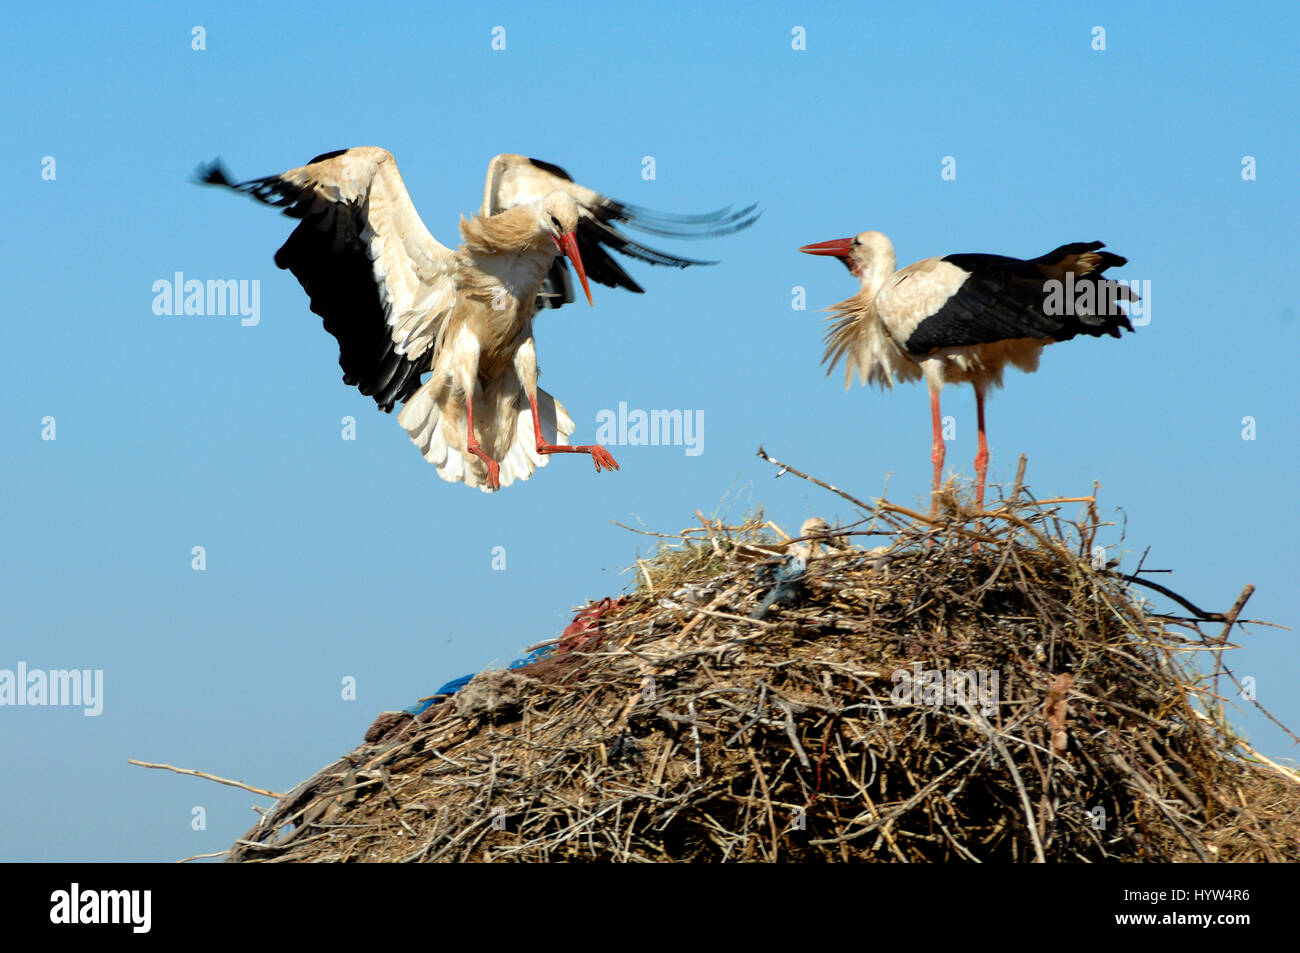 White Stork, Ciconia ciconia, Landing on Nest - Stock Image